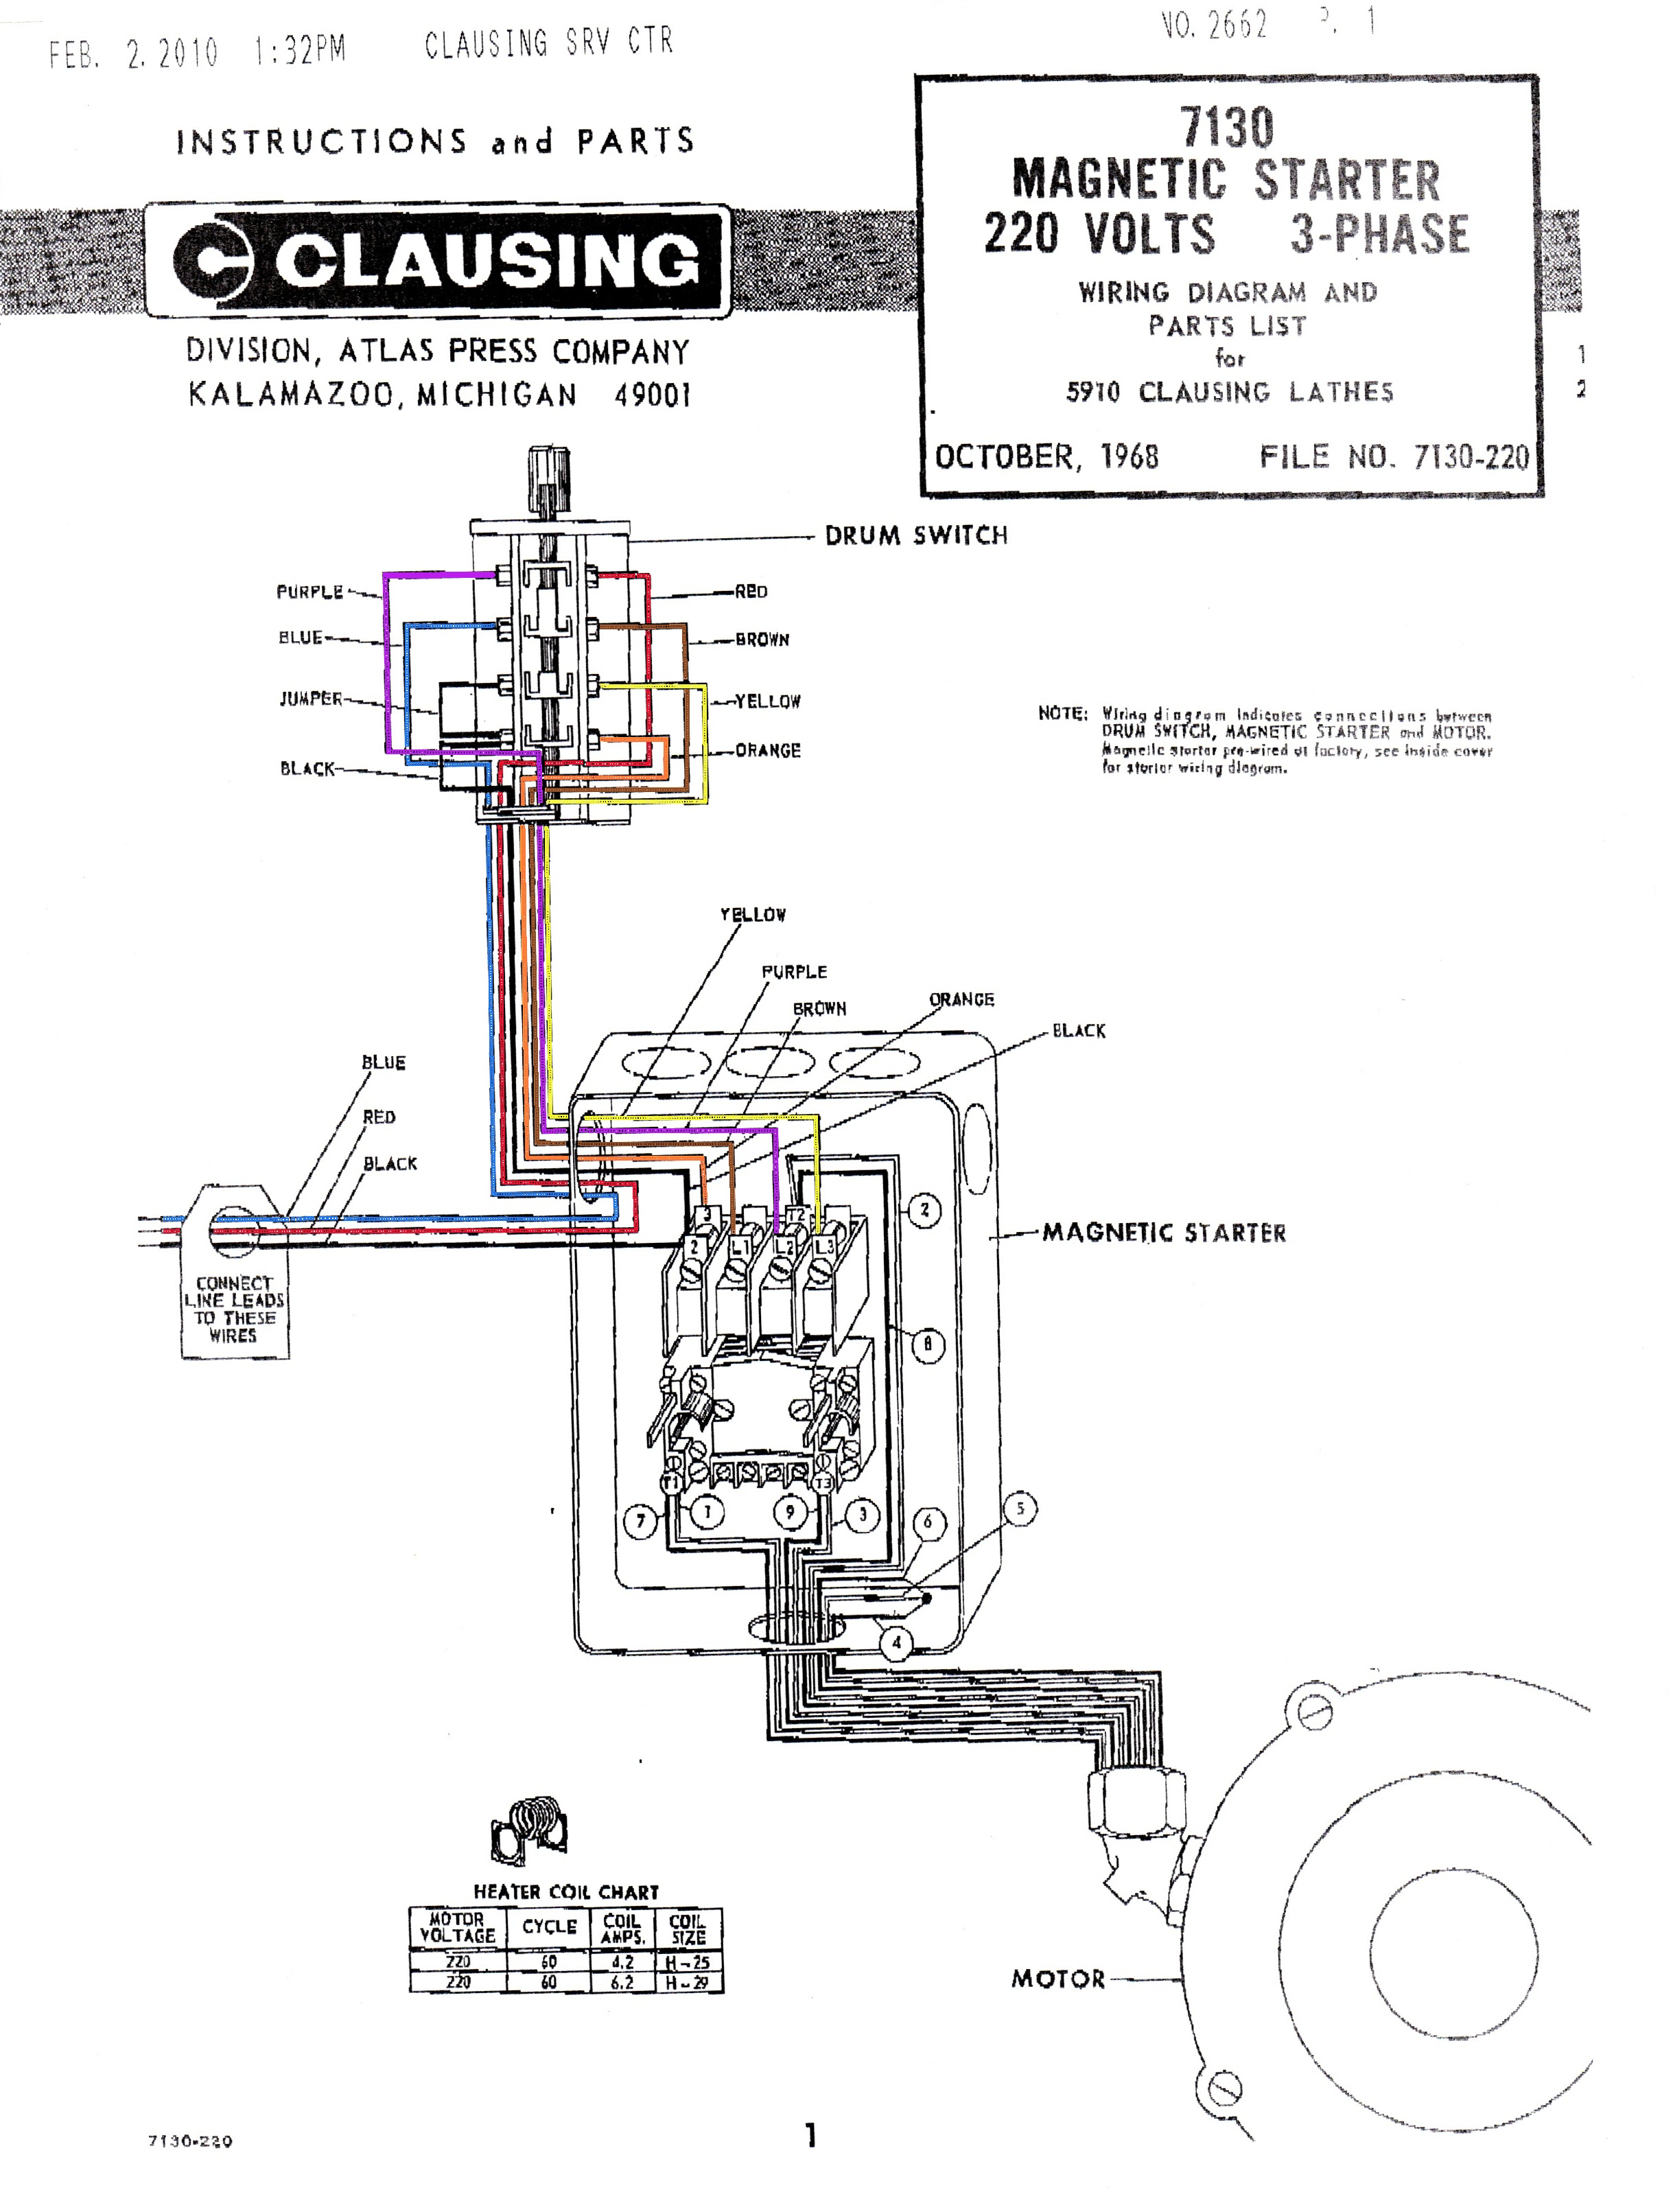 7130 Magnetic Starter Wiring Diagram Color starter wiring diagrams starter motor relay wiring diagram infratech heaters wiring diagrams at mr168.co